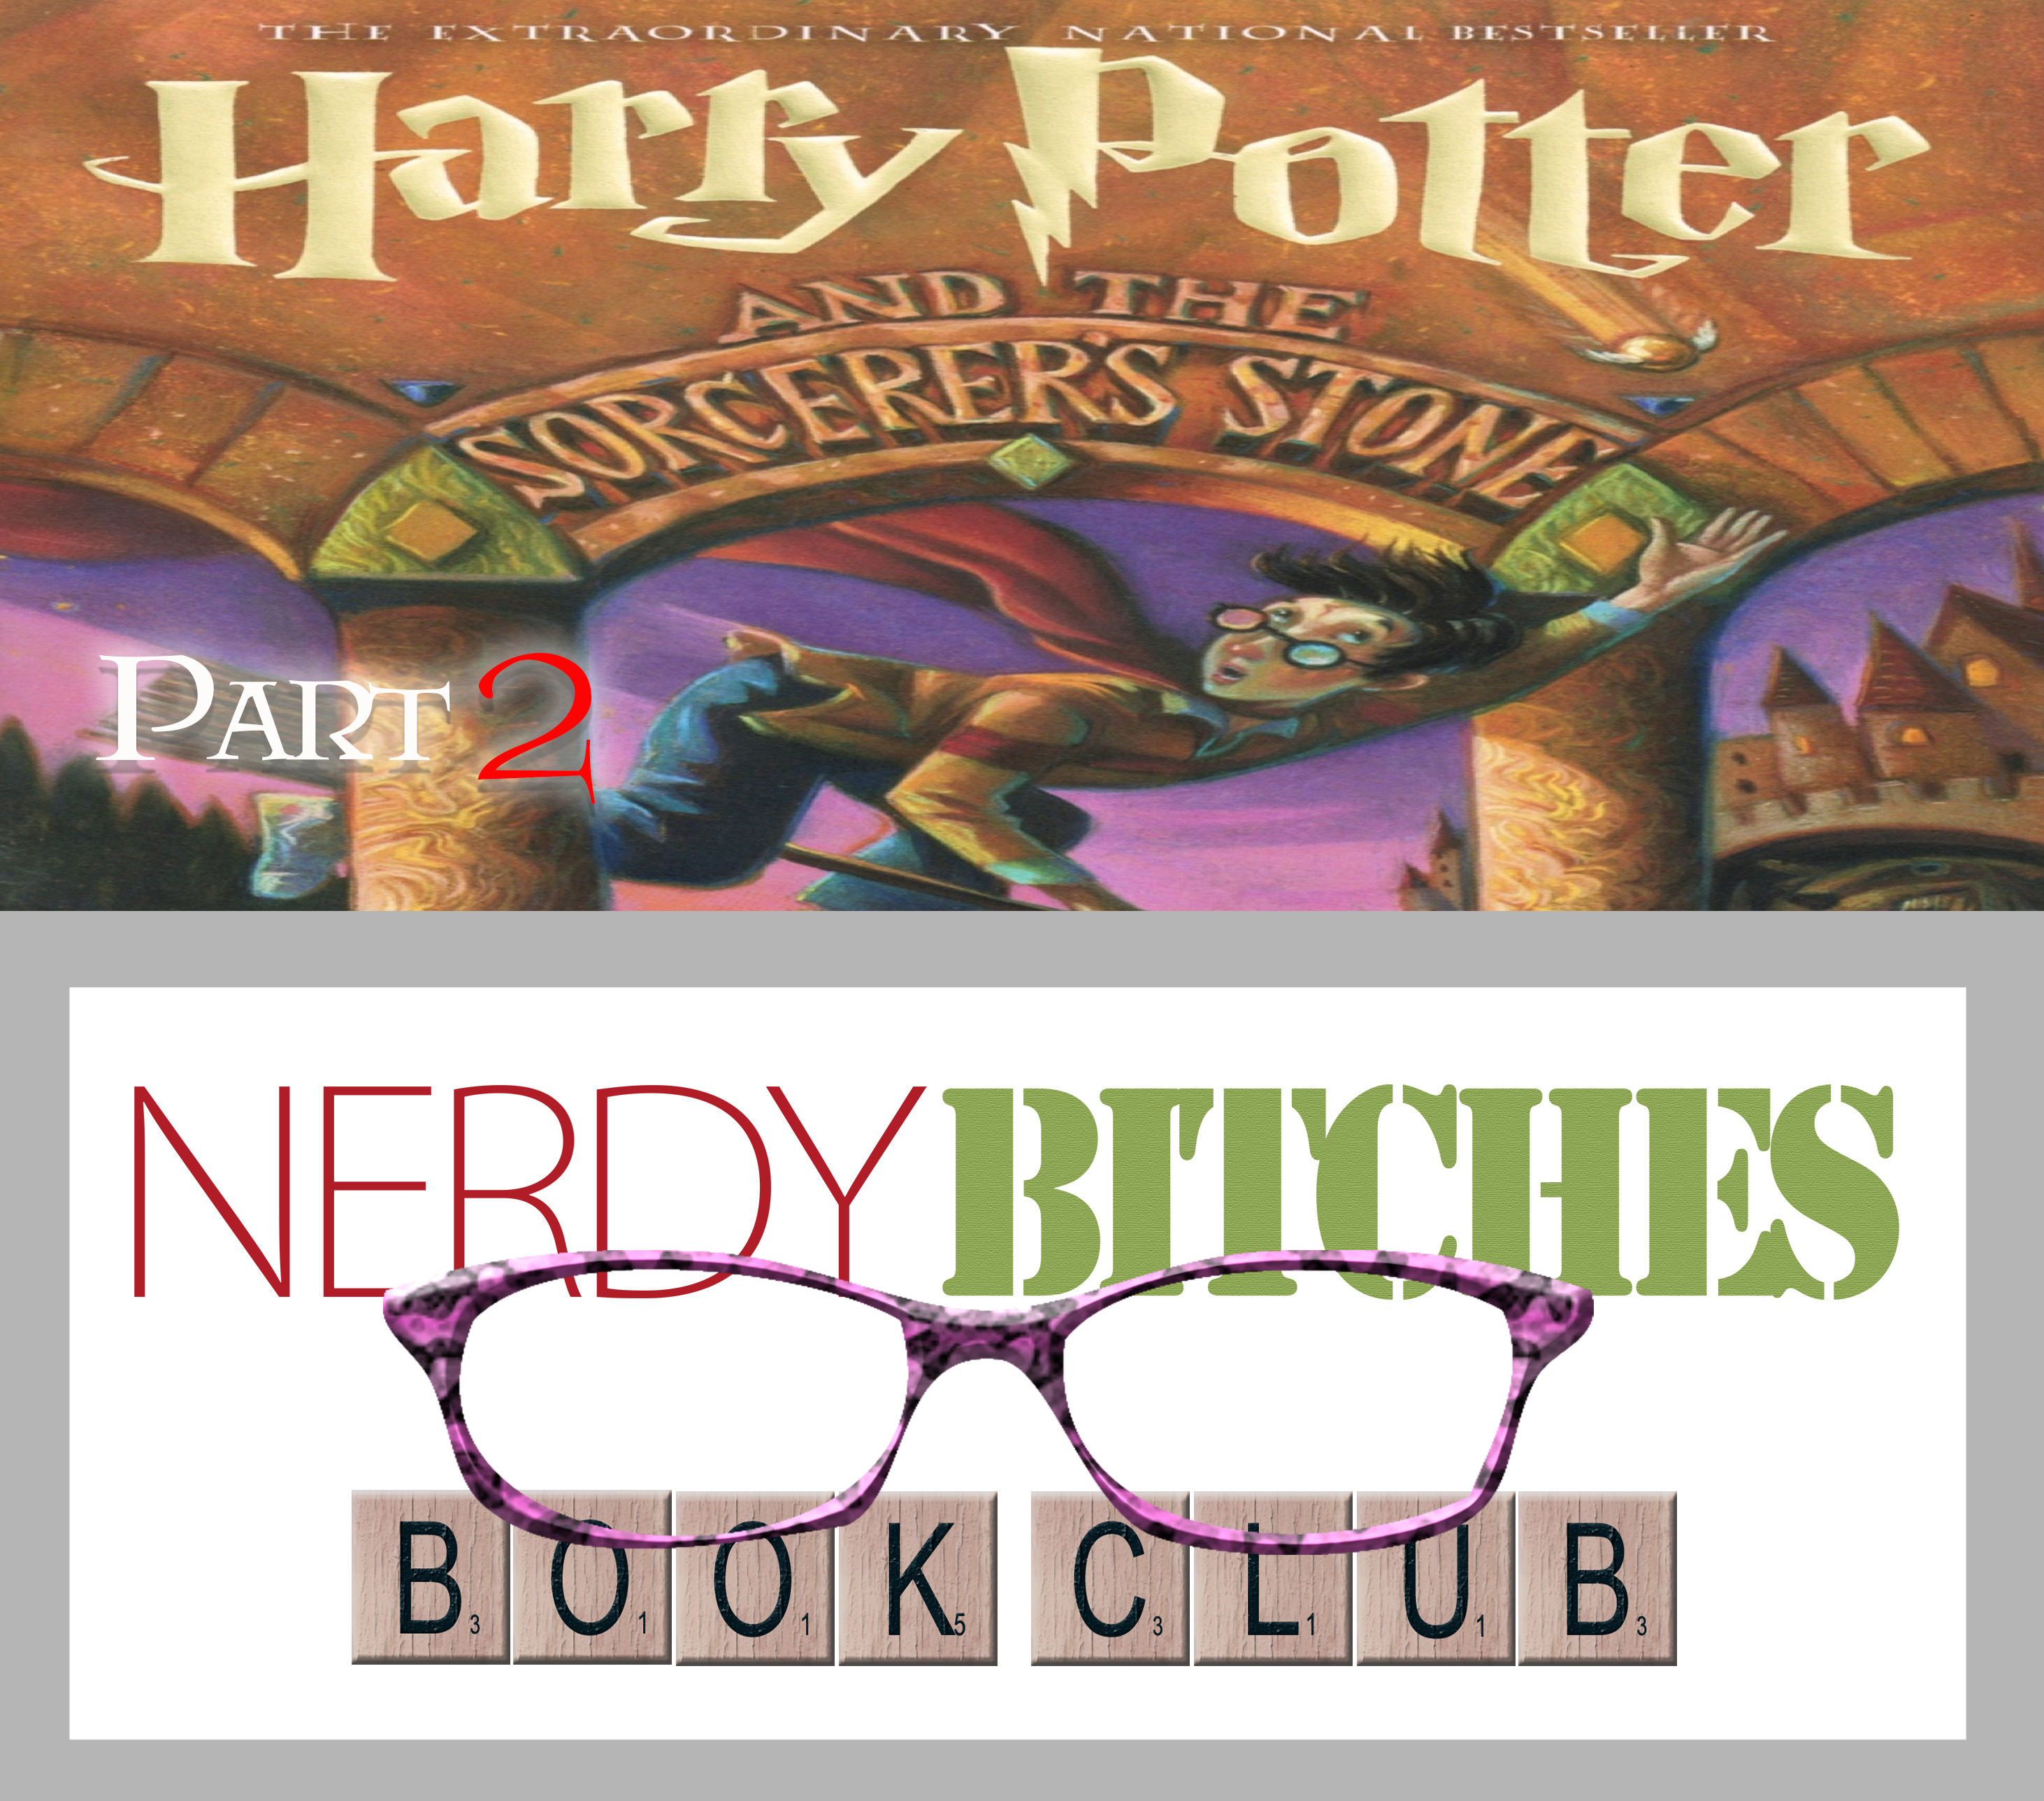 Book Club: Harry Potter and the Sorcerer's Stone Part 2